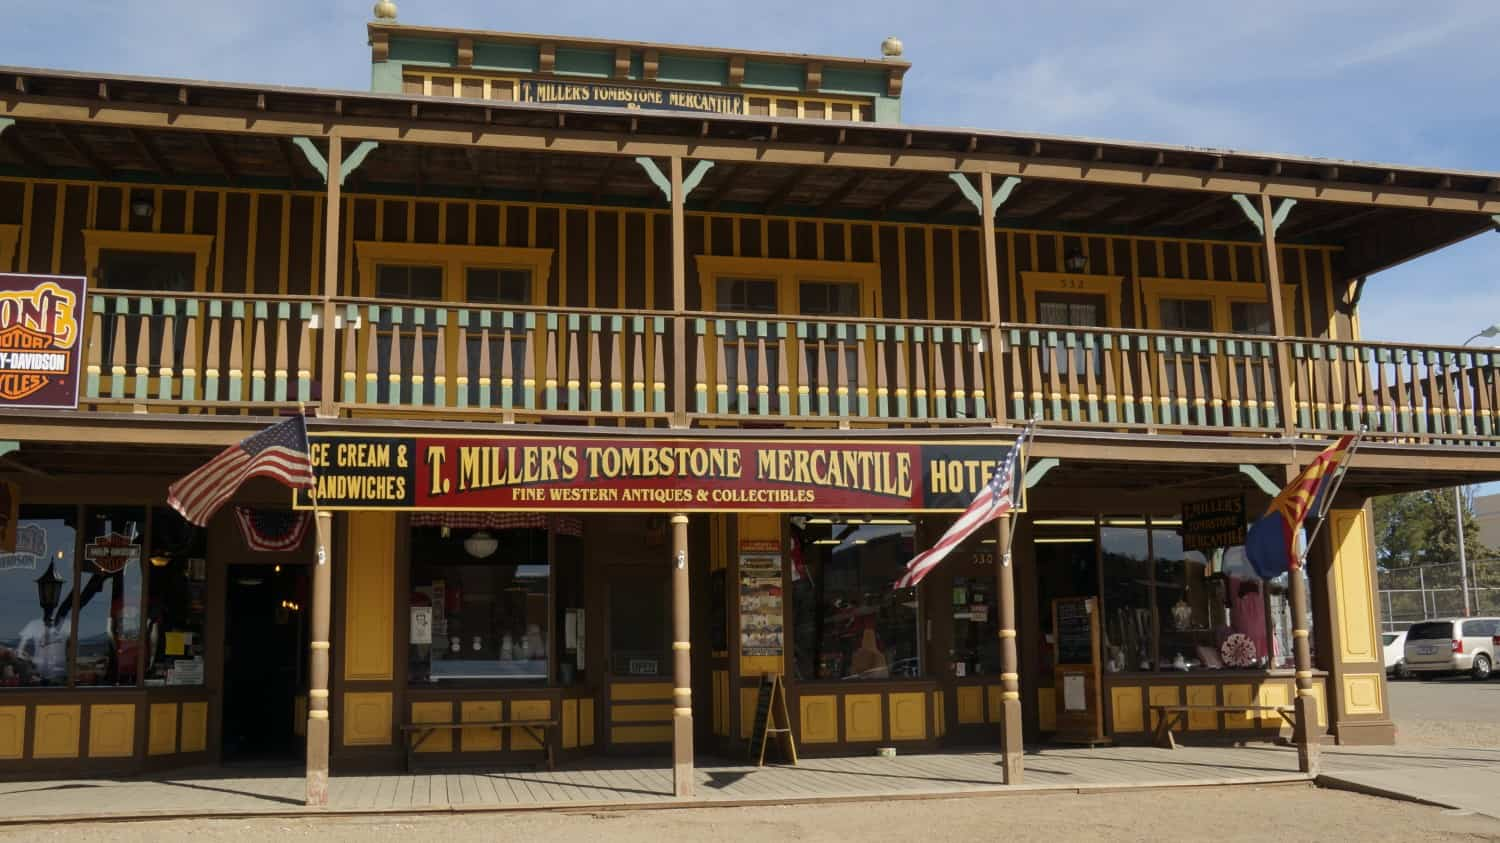 T. Miller's Tombston Mercantile - A Pet Friendly Attraction in Tombstone, AZ